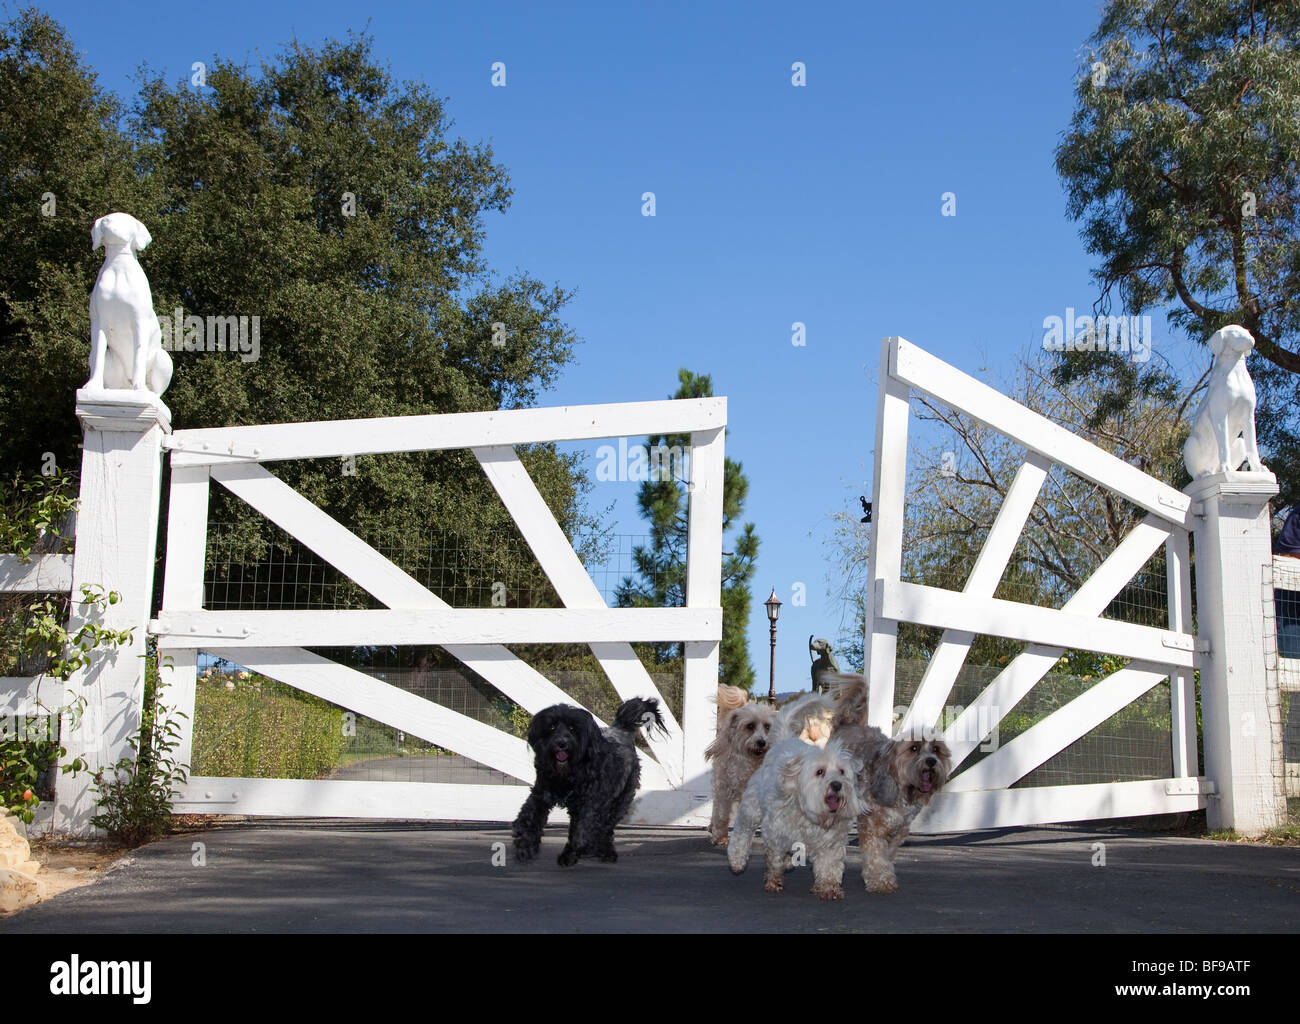 dogs dog escaping gates lost - Stock Image